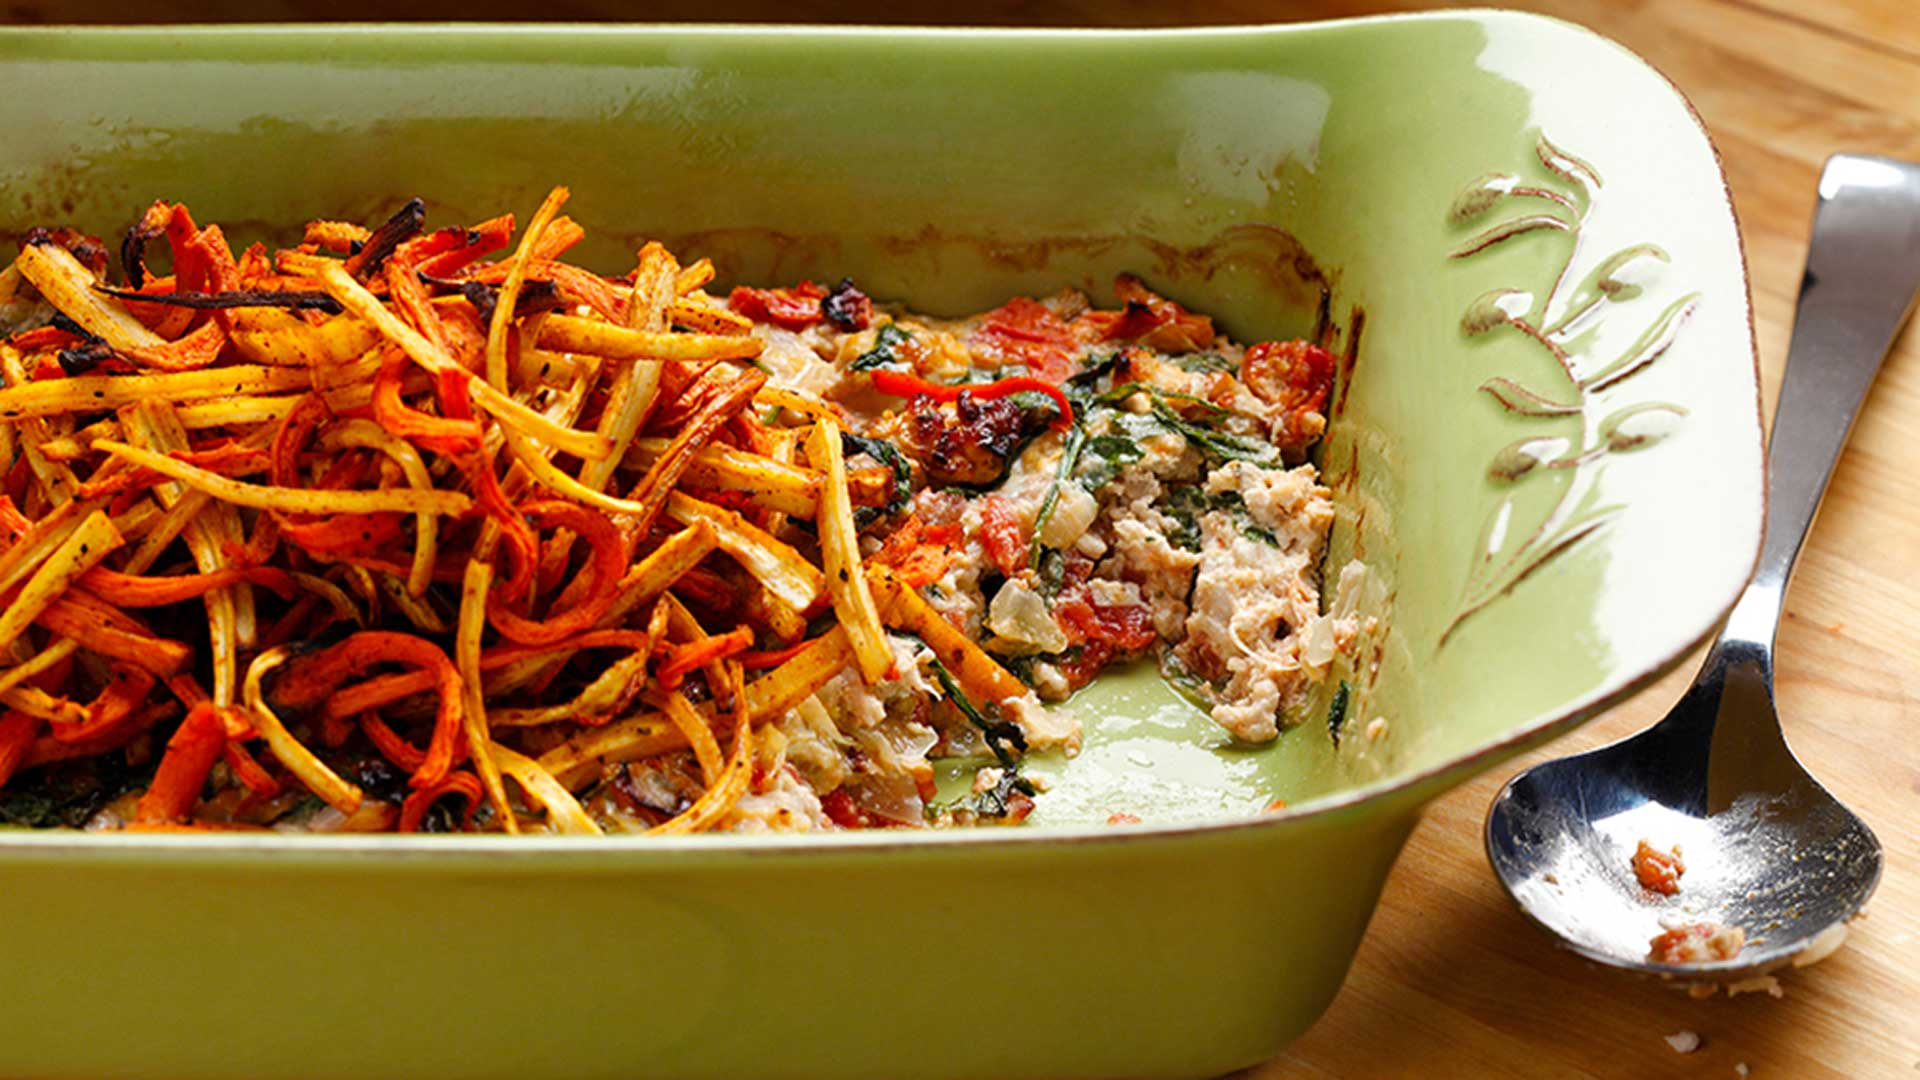 Turkey burger casserole with parsnip and carrot frites